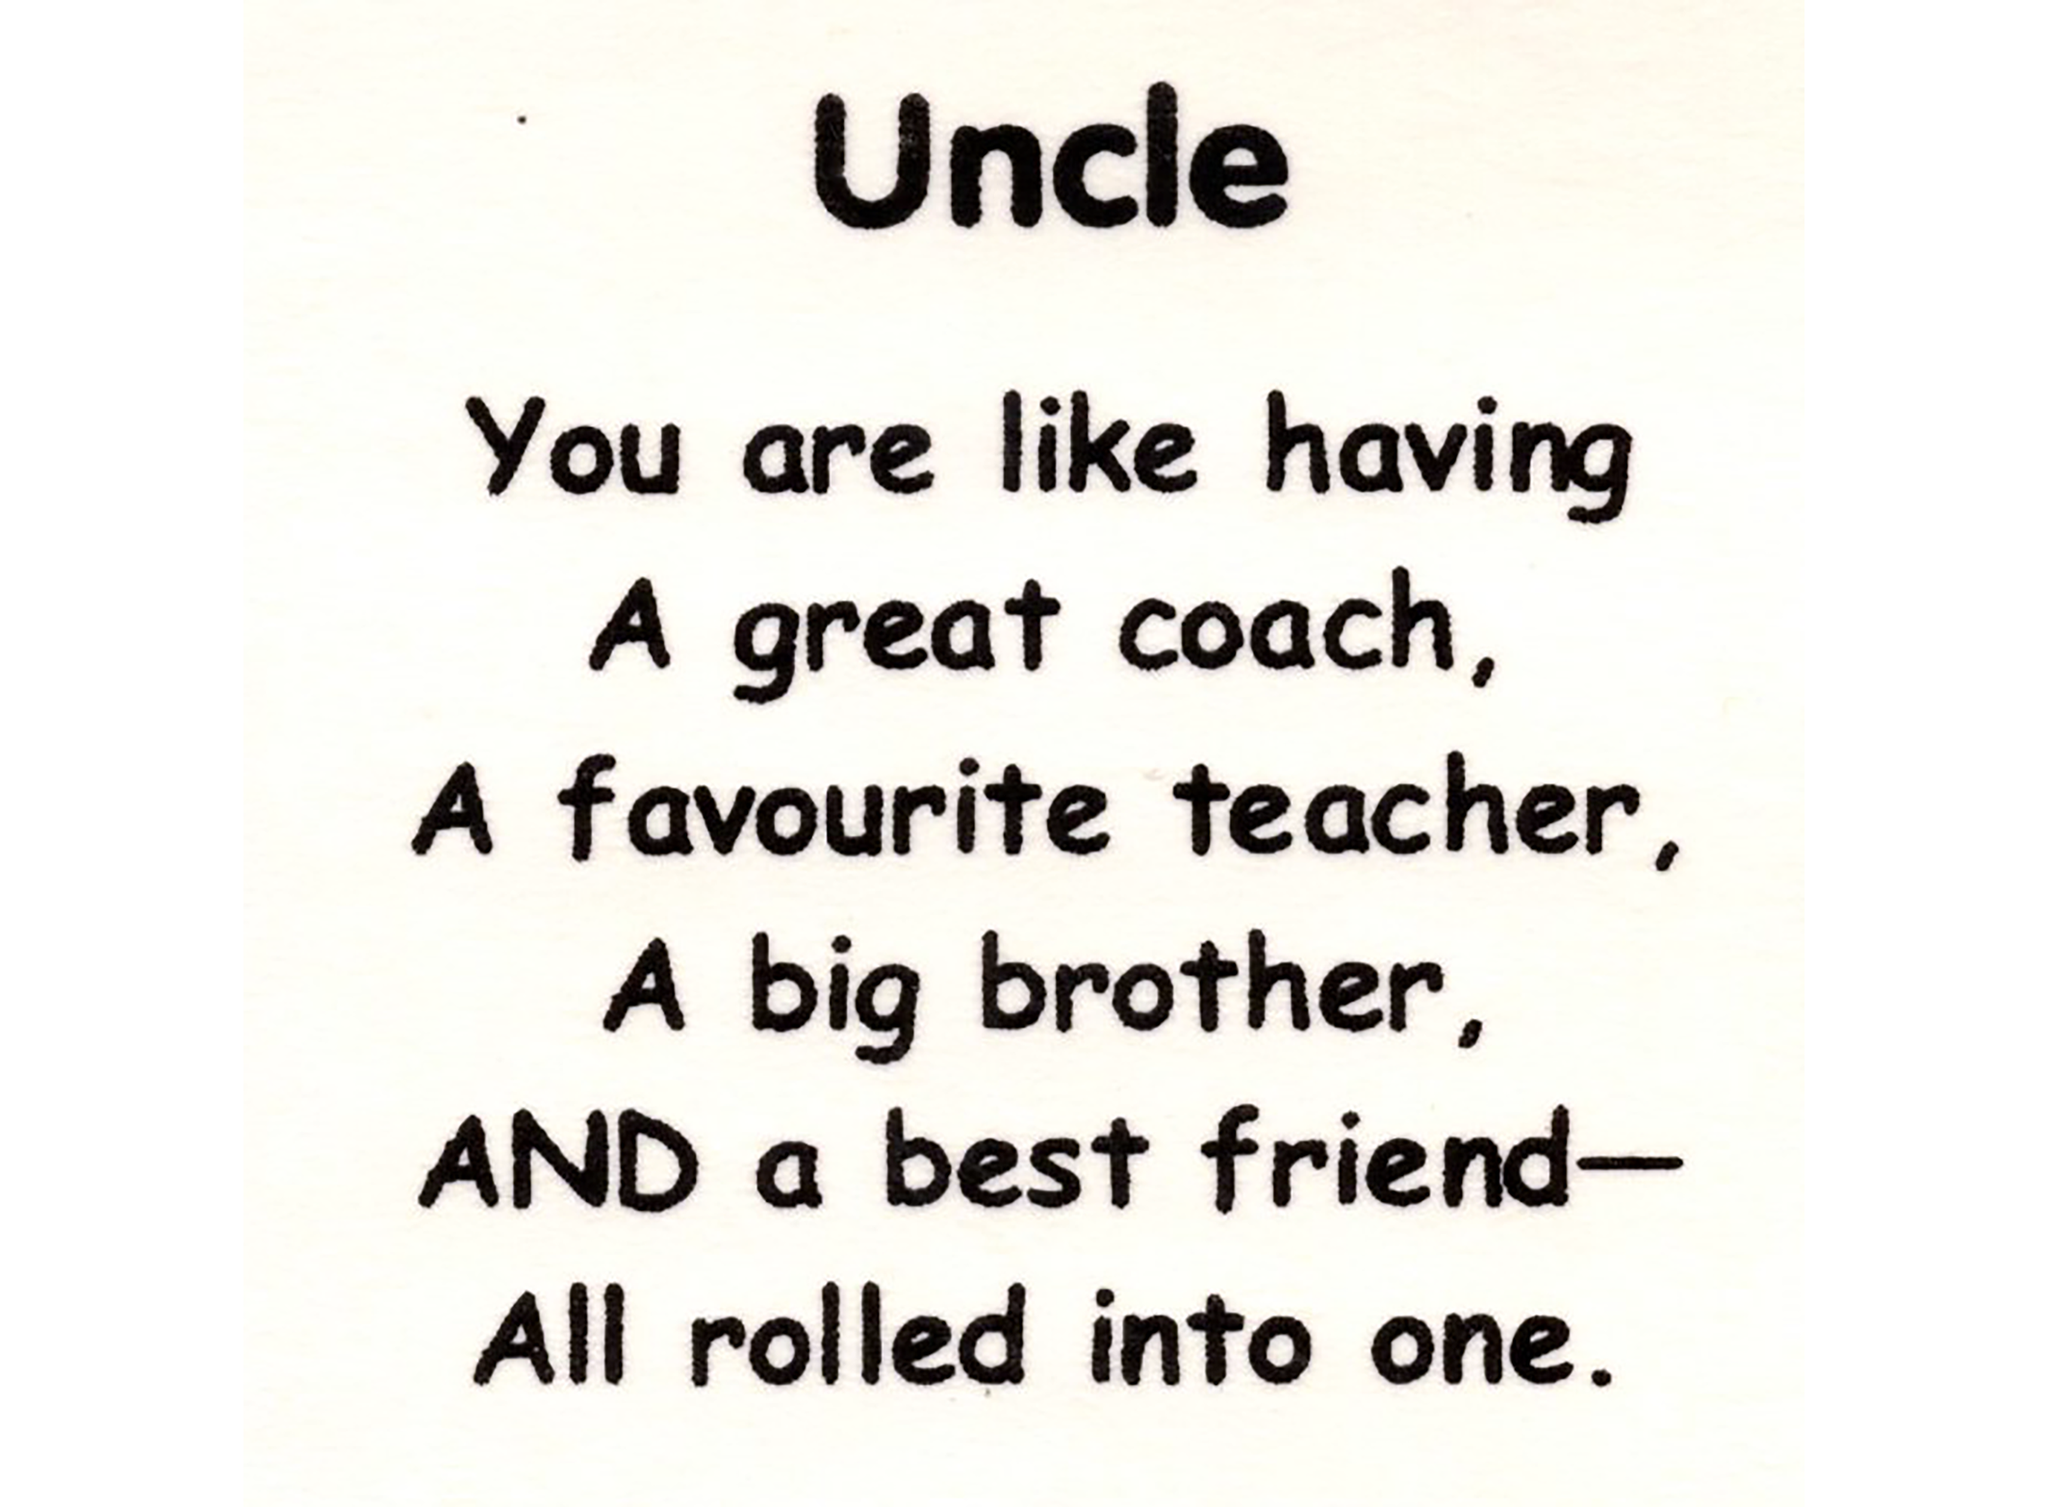 Sweet saying: Uncle   You are like having a great coach, A